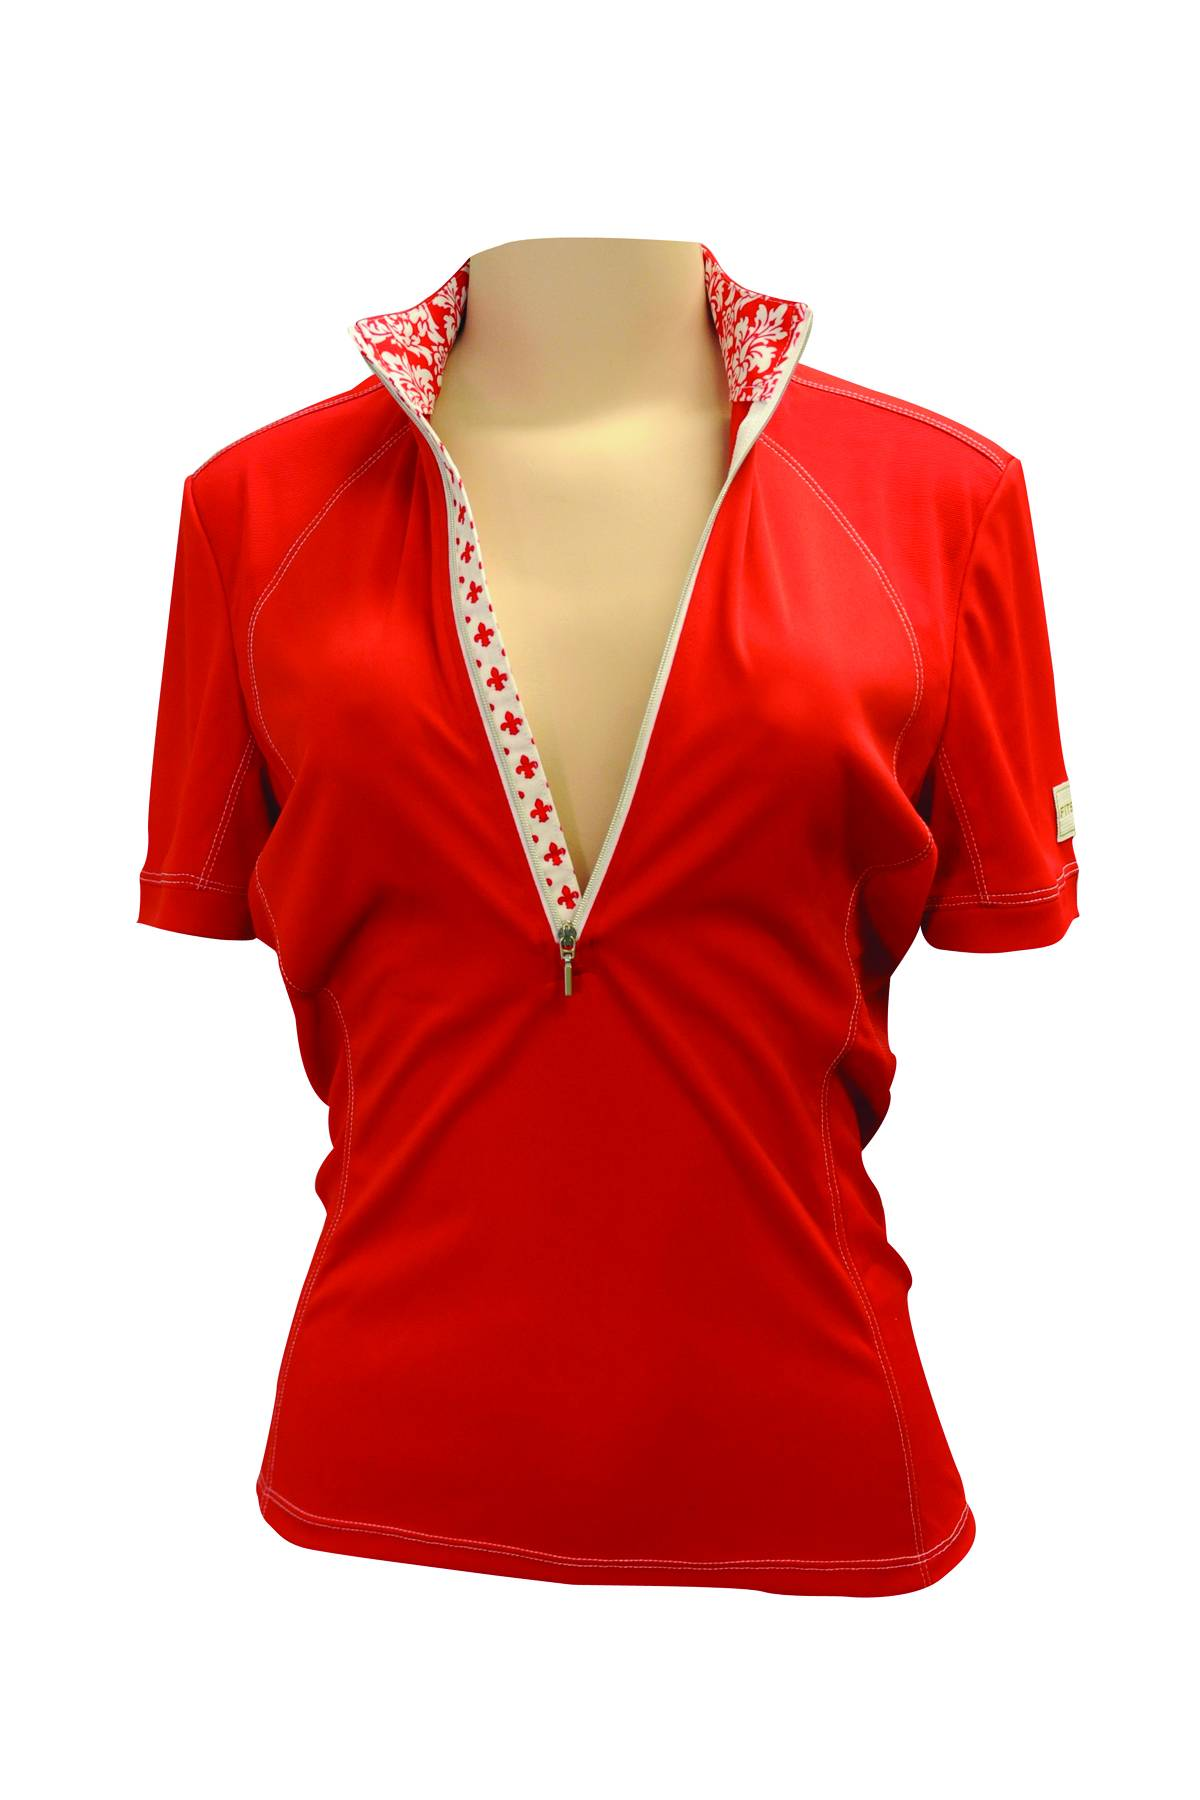 FITS Sea Breeze Short Sleeve Tech Shirt - Ladies - Red